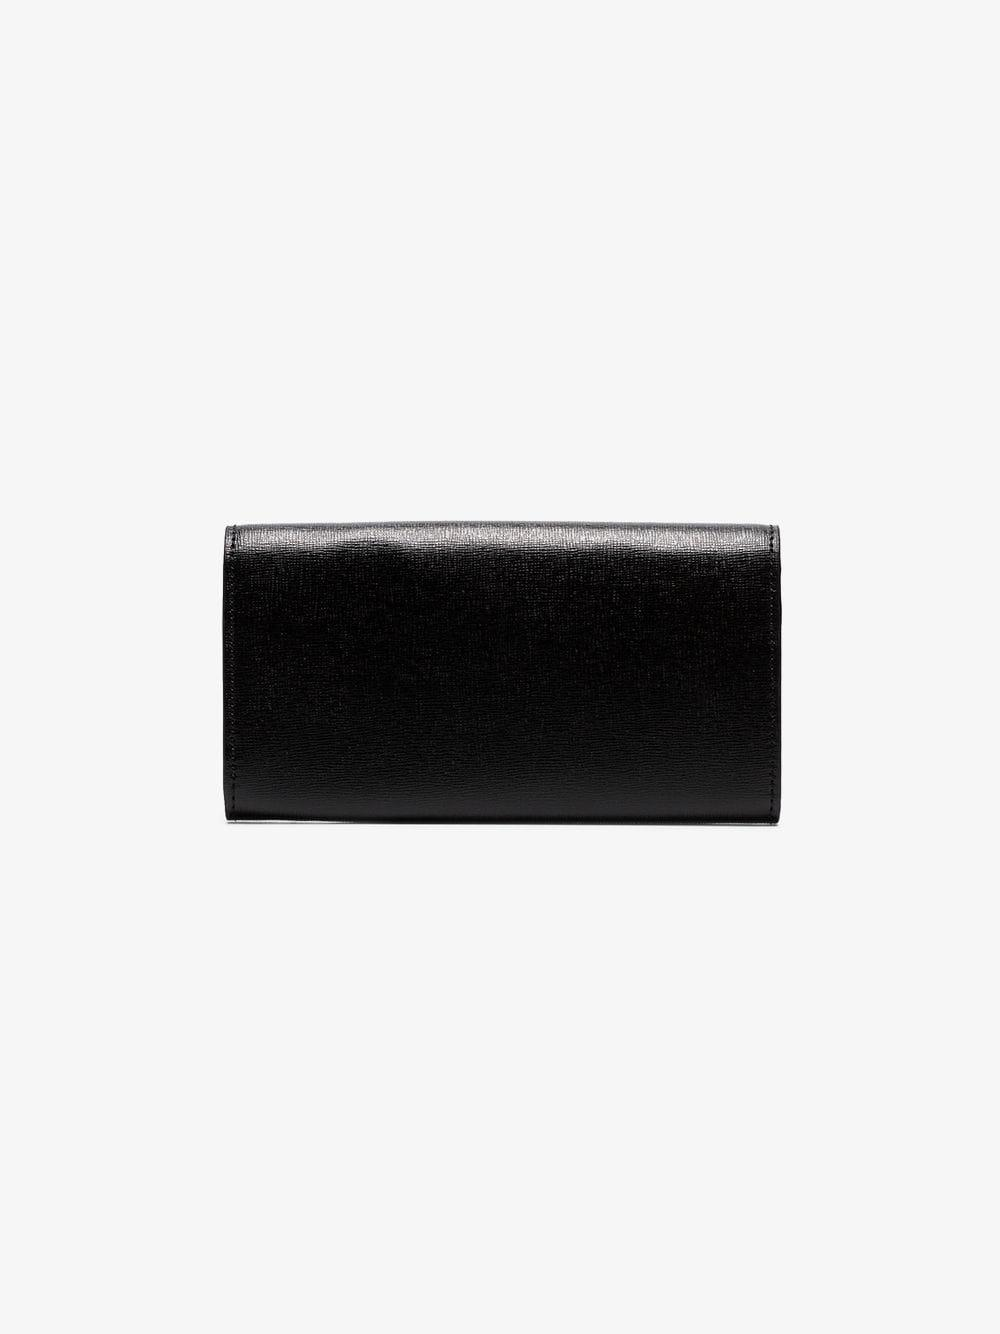 68474df8aaef Lyst - Off-White c o Virgil Abloh Black And Green Arrow Logo Grained  Leather Wallet in Black